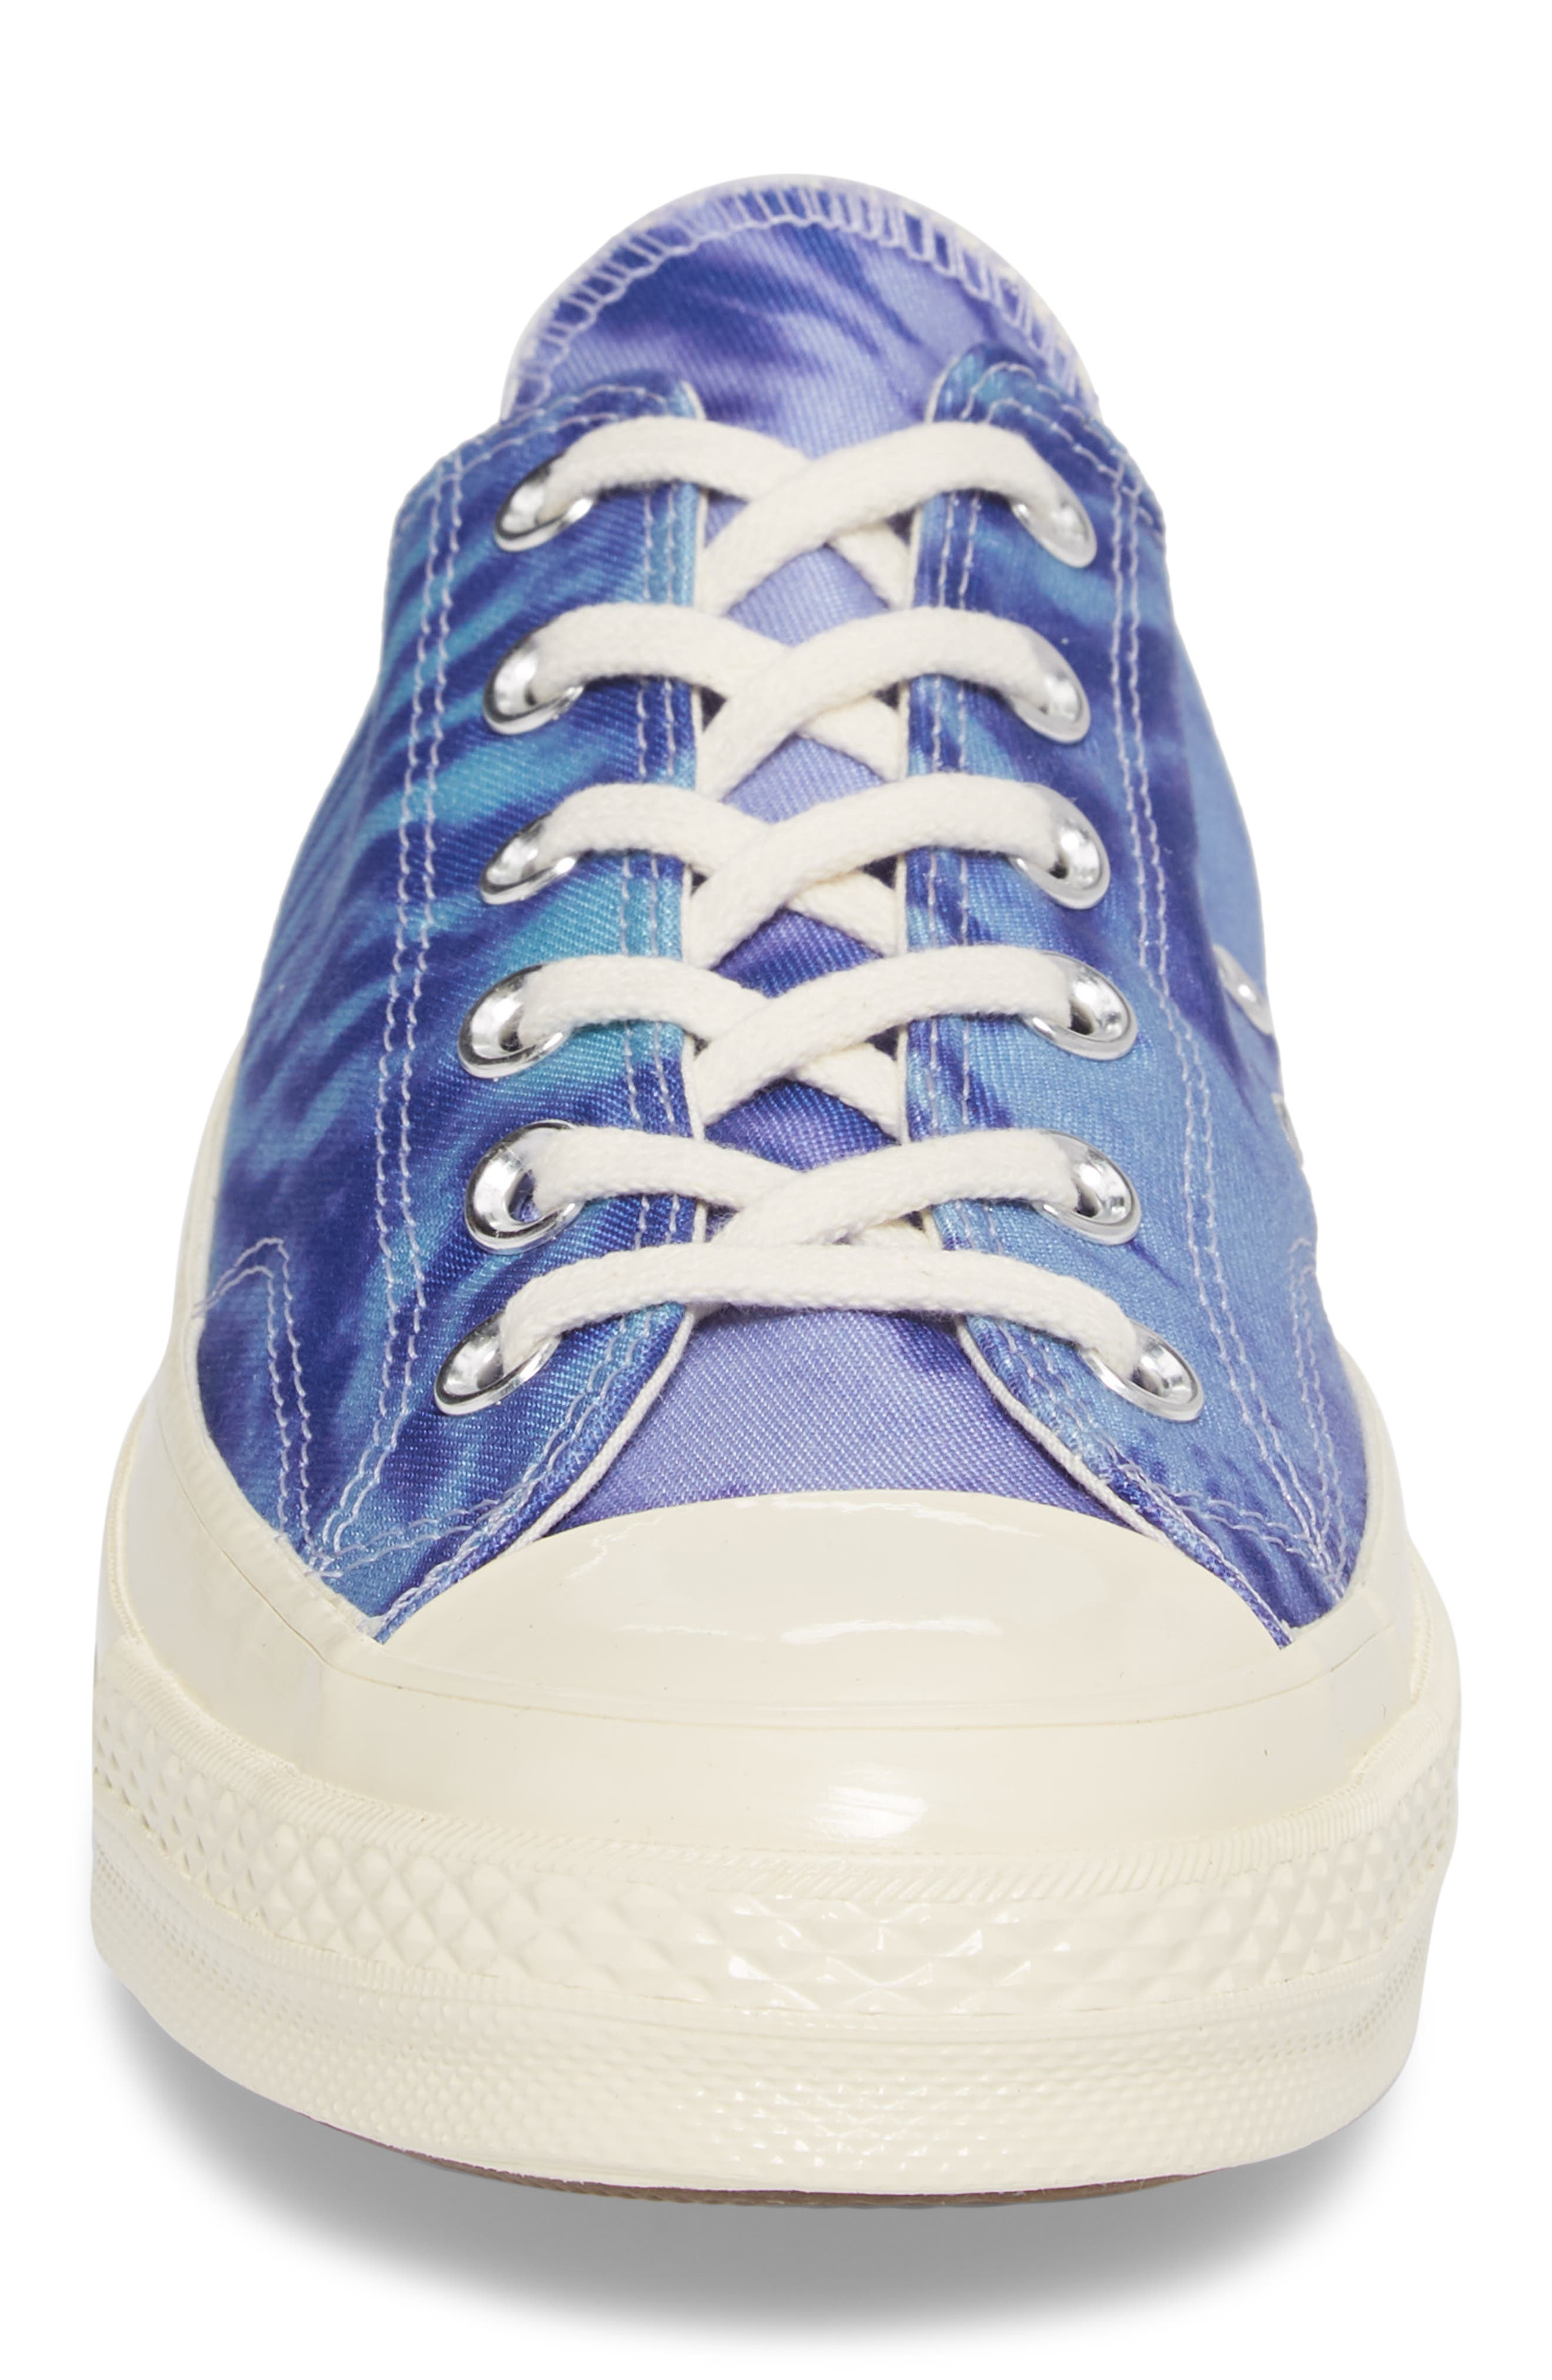 Chuck Taylor<sup>®</sup> All Star<sup>®</sup> 70 Tie Dye Low Top Sneaker,                             Alternate thumbnail 4, color,                             Shoreline Blue